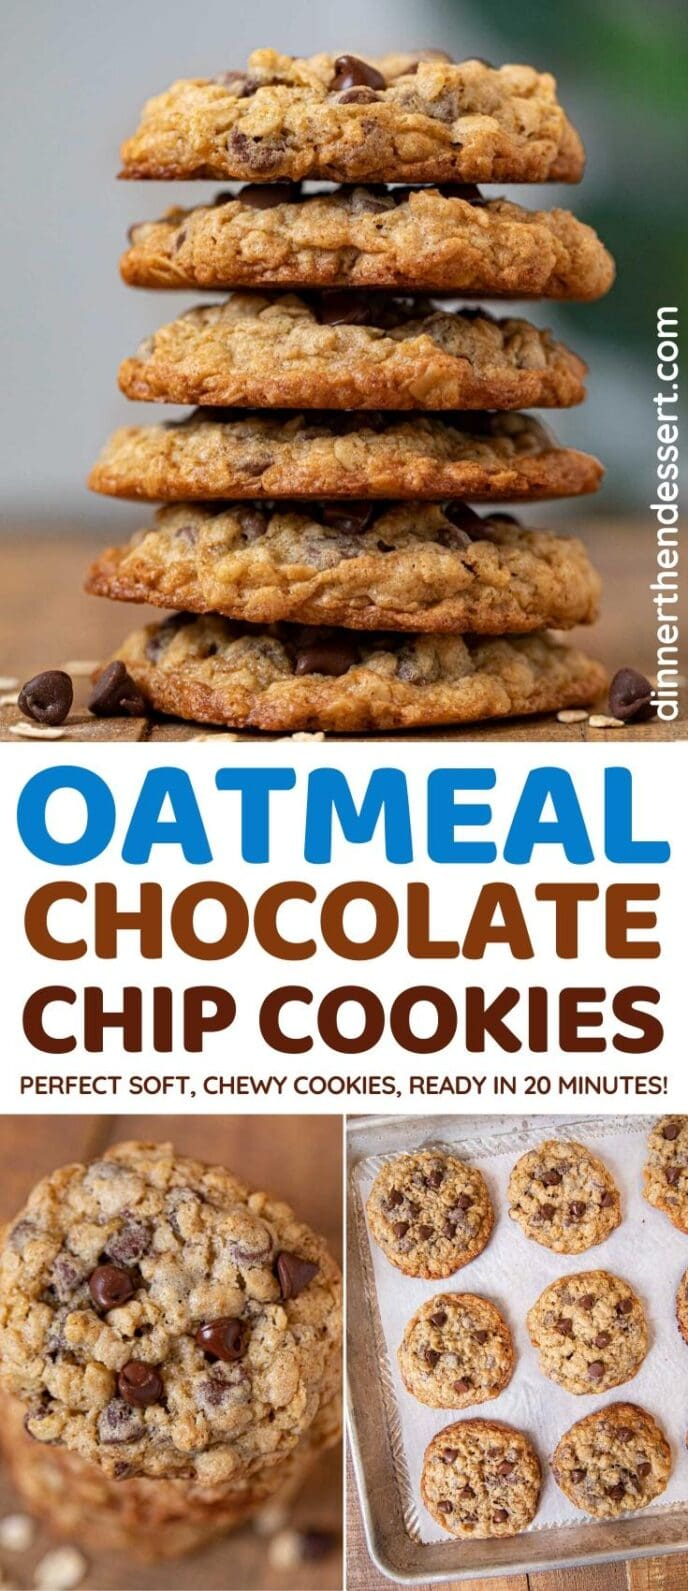 Oatmeal Chocolate Chip Cookies collage